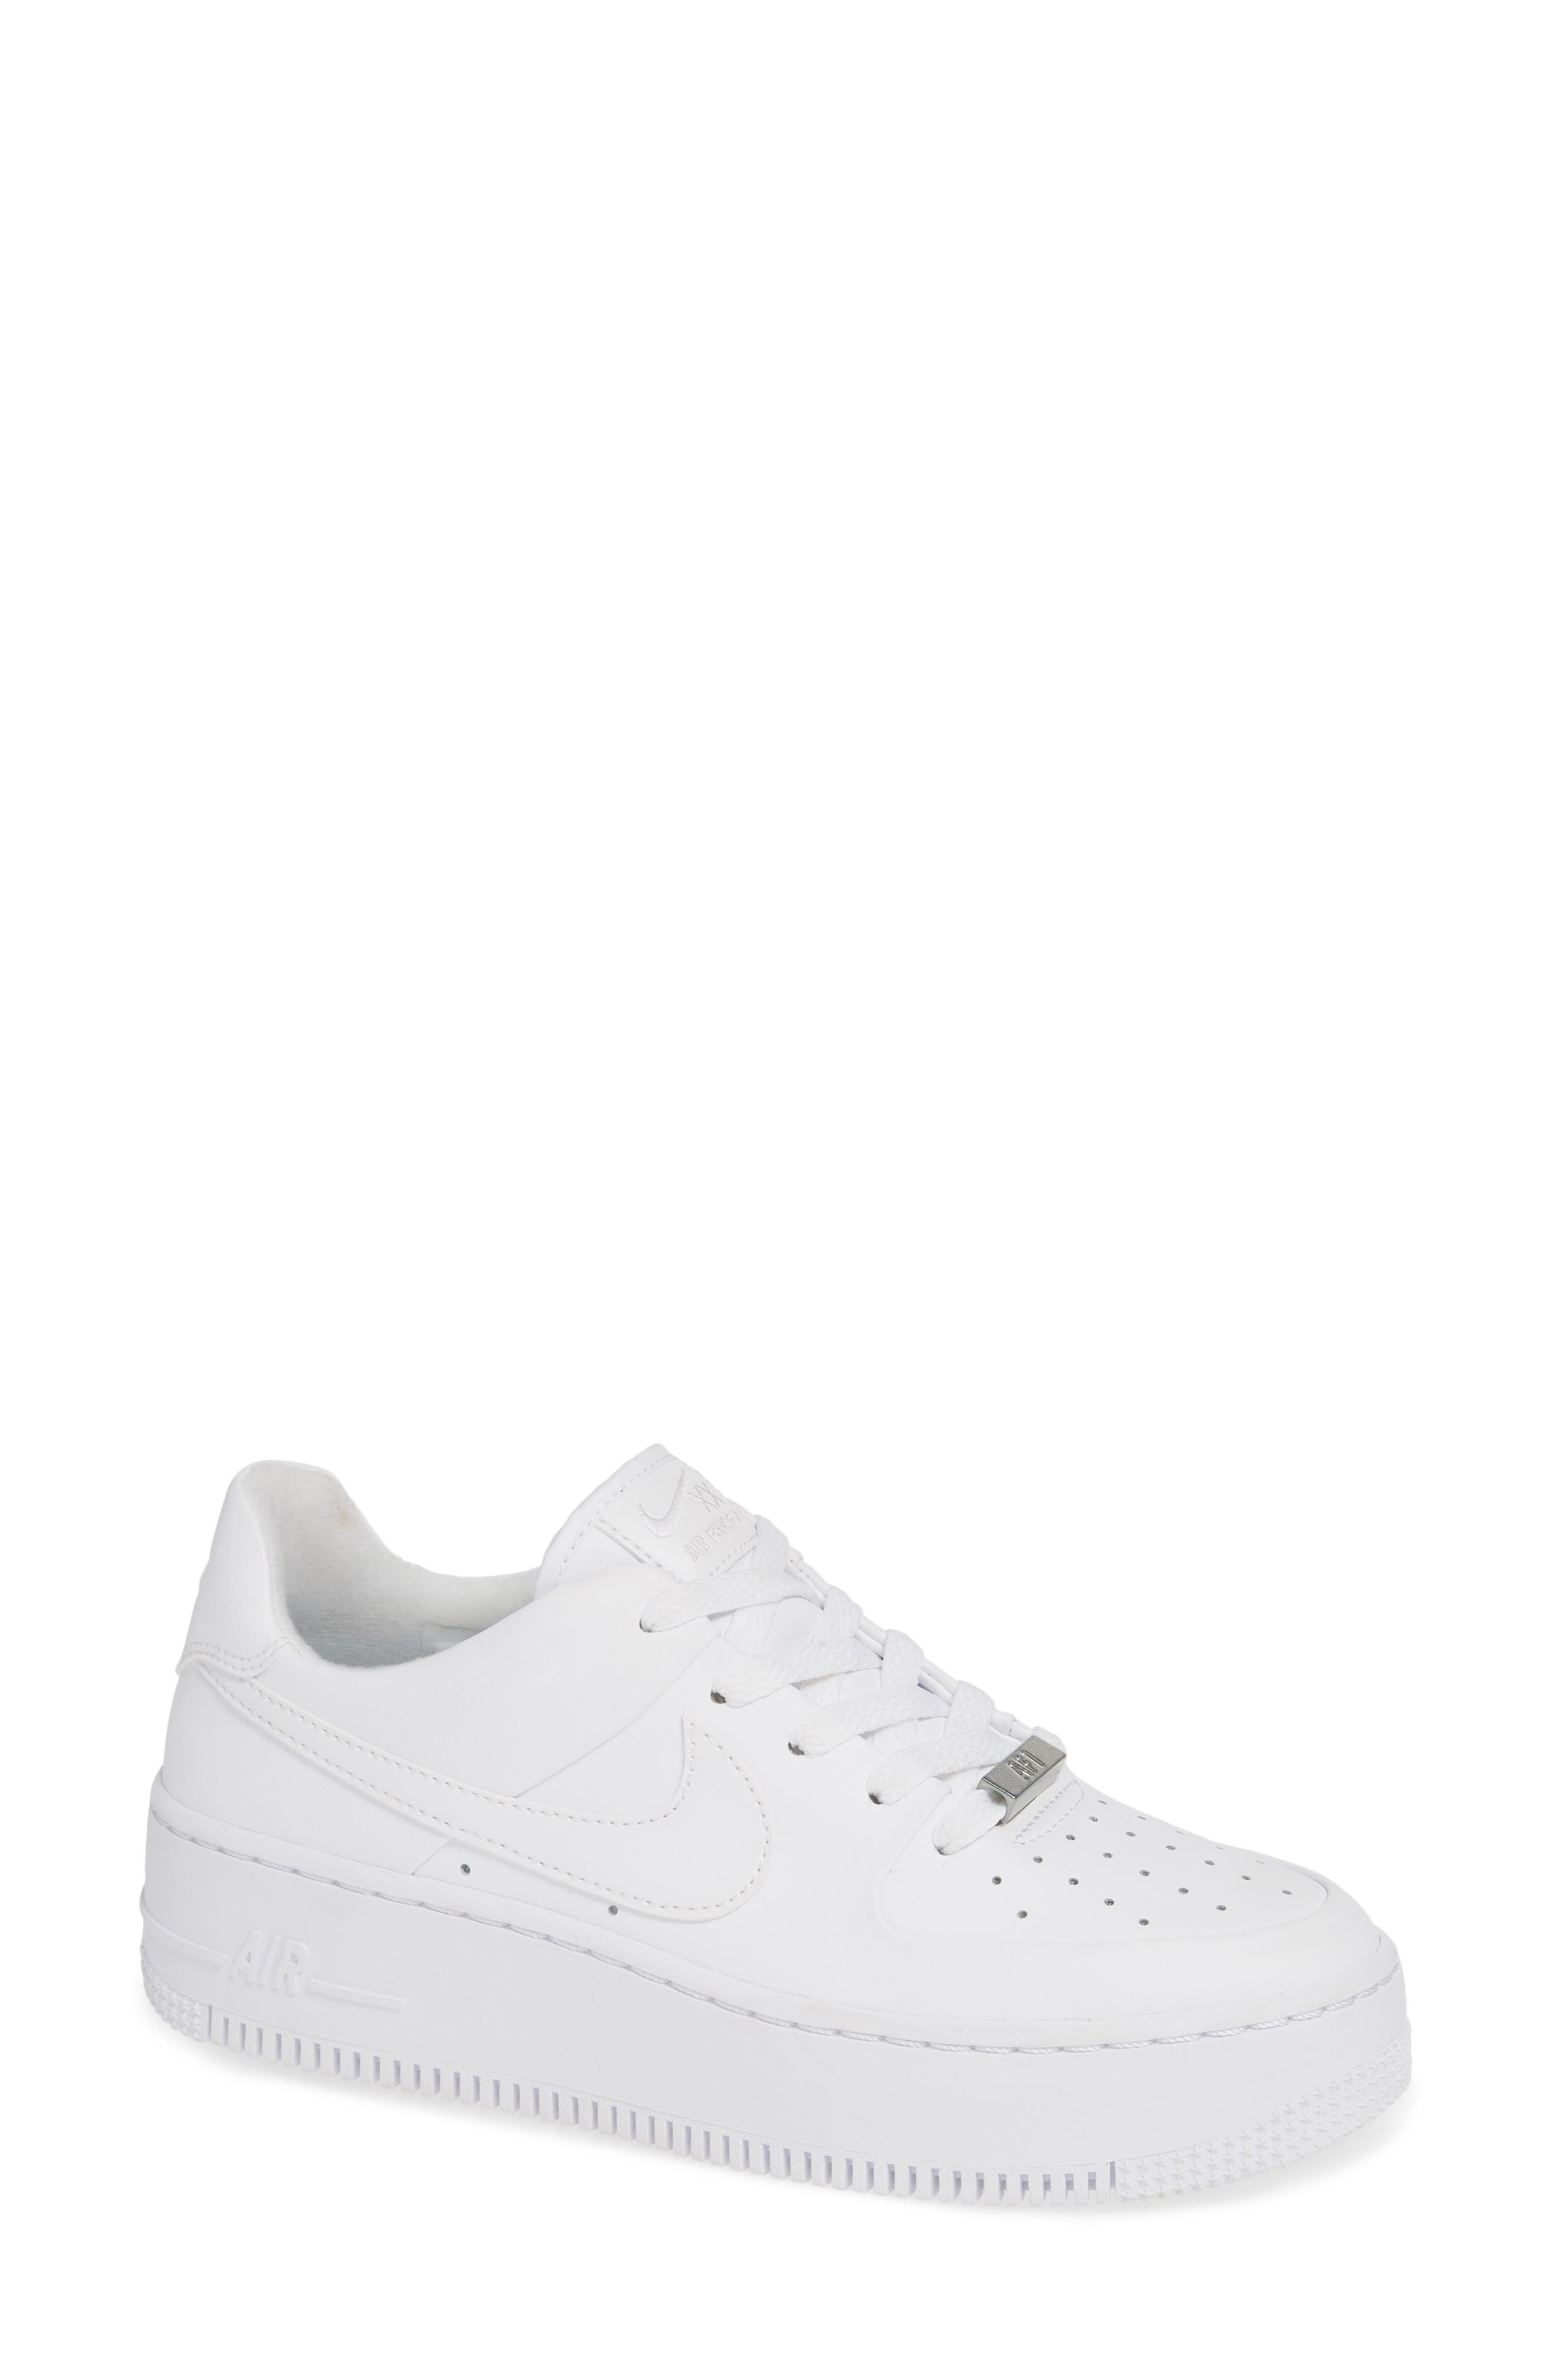 All nike white shoes for women